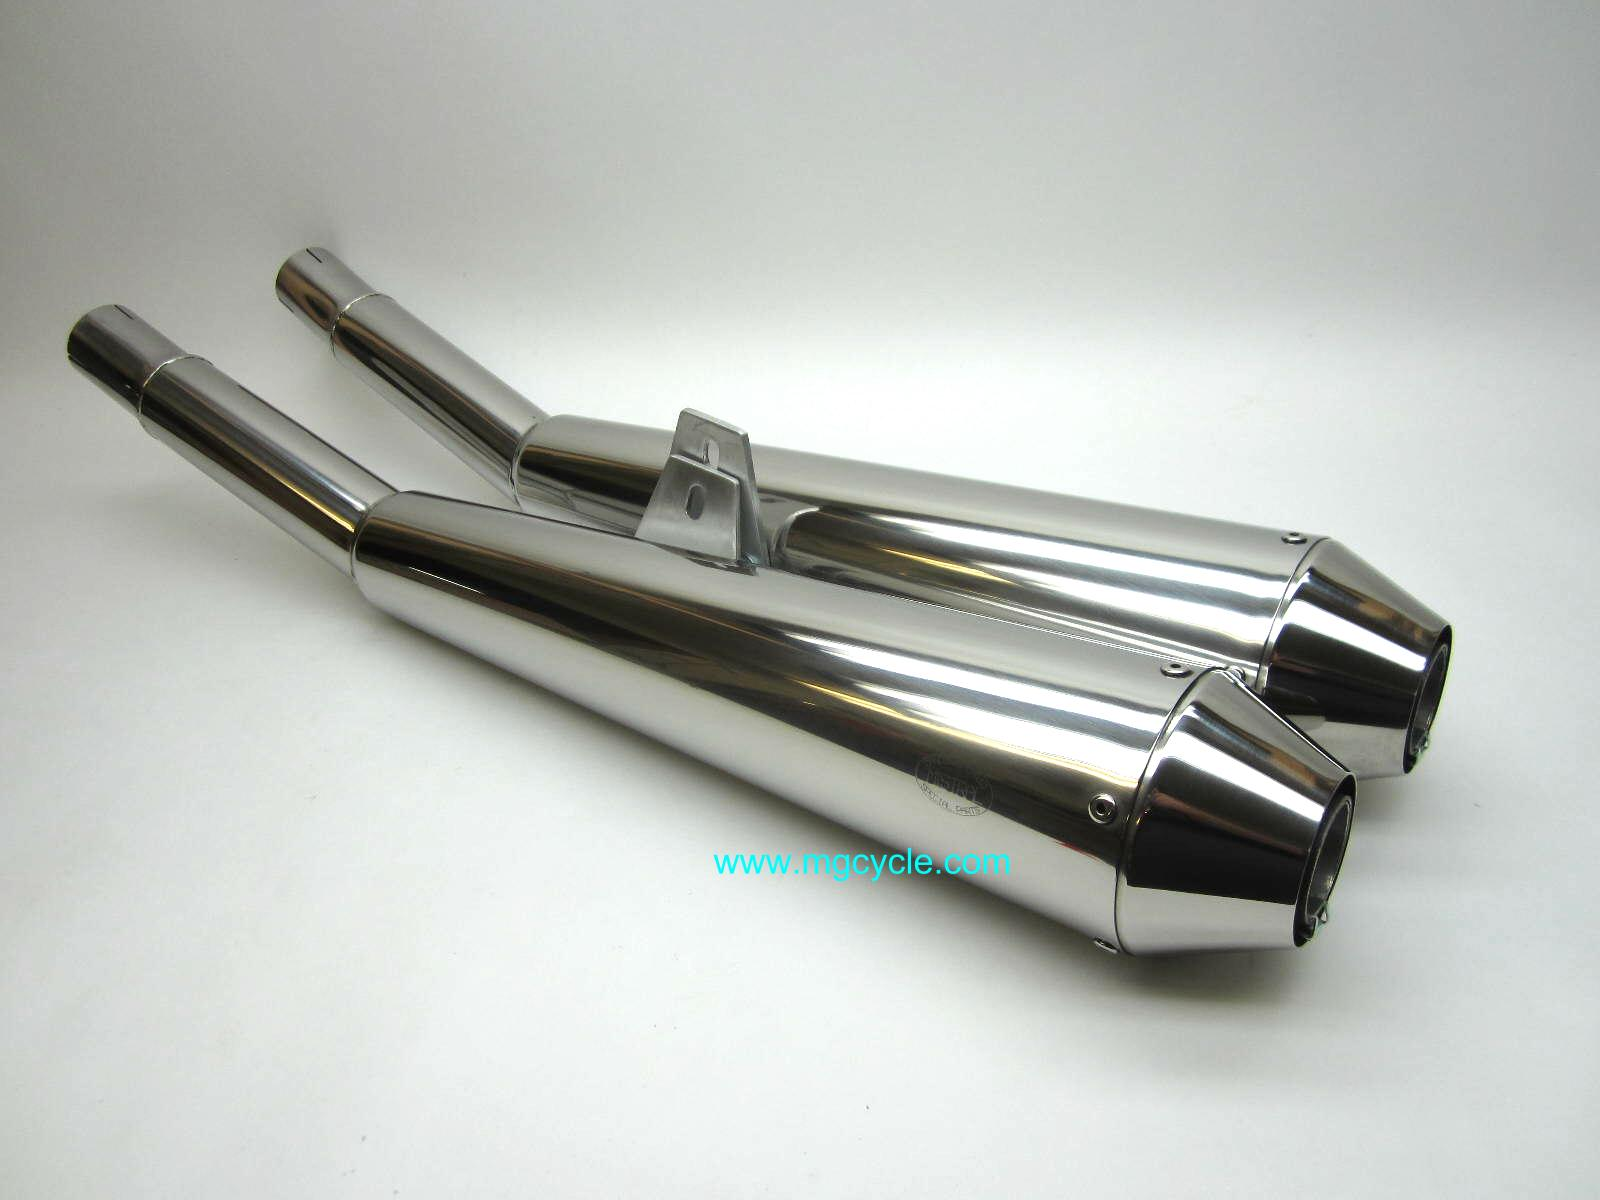 Mistral reverse cone muffler set for LeMans 1000 and 1000S